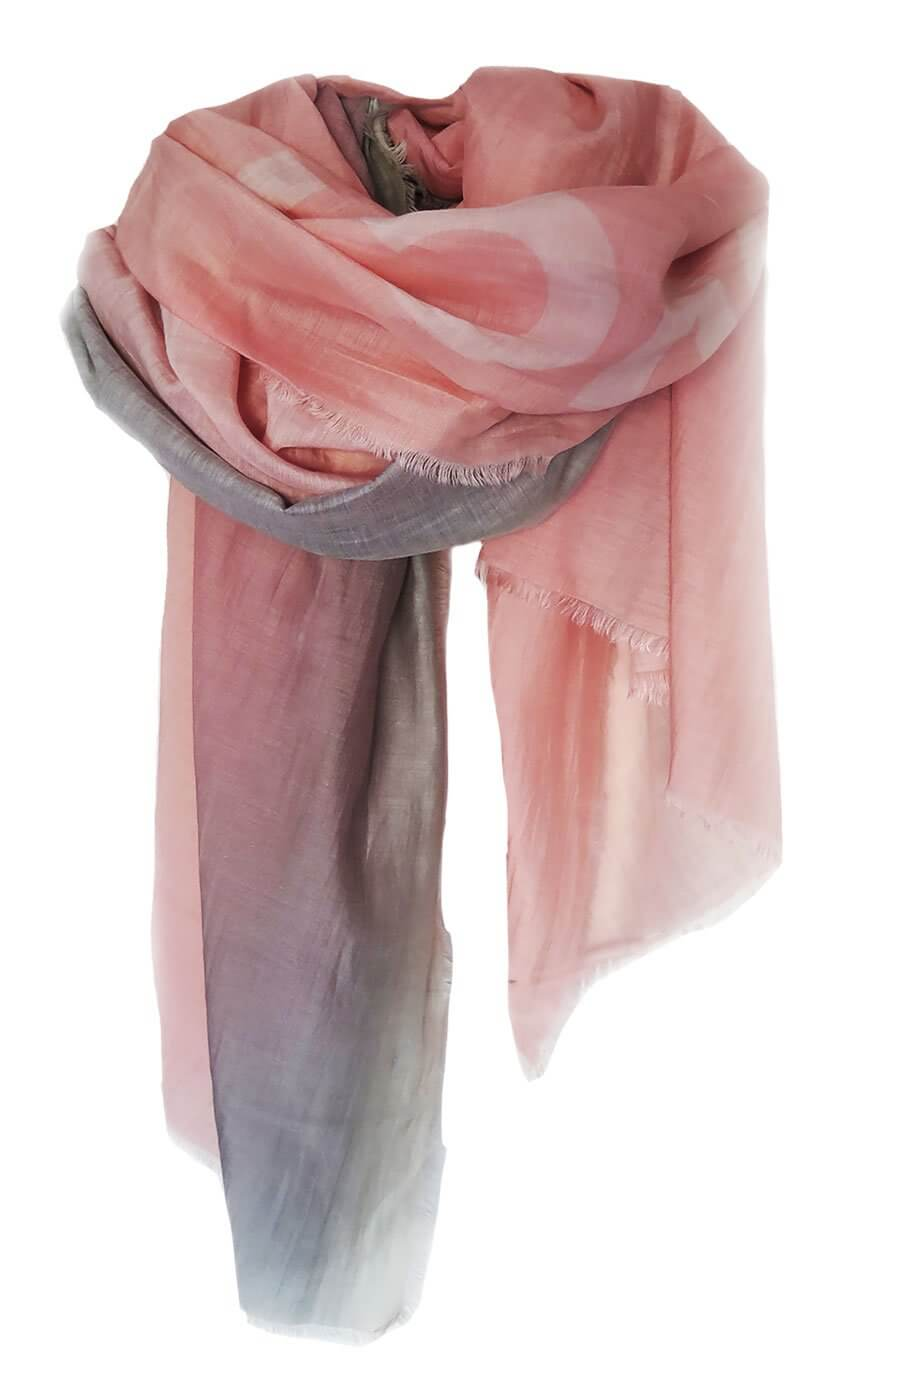 D/Luca Sanctuary Shades of Blush - Silk Cotton Blend